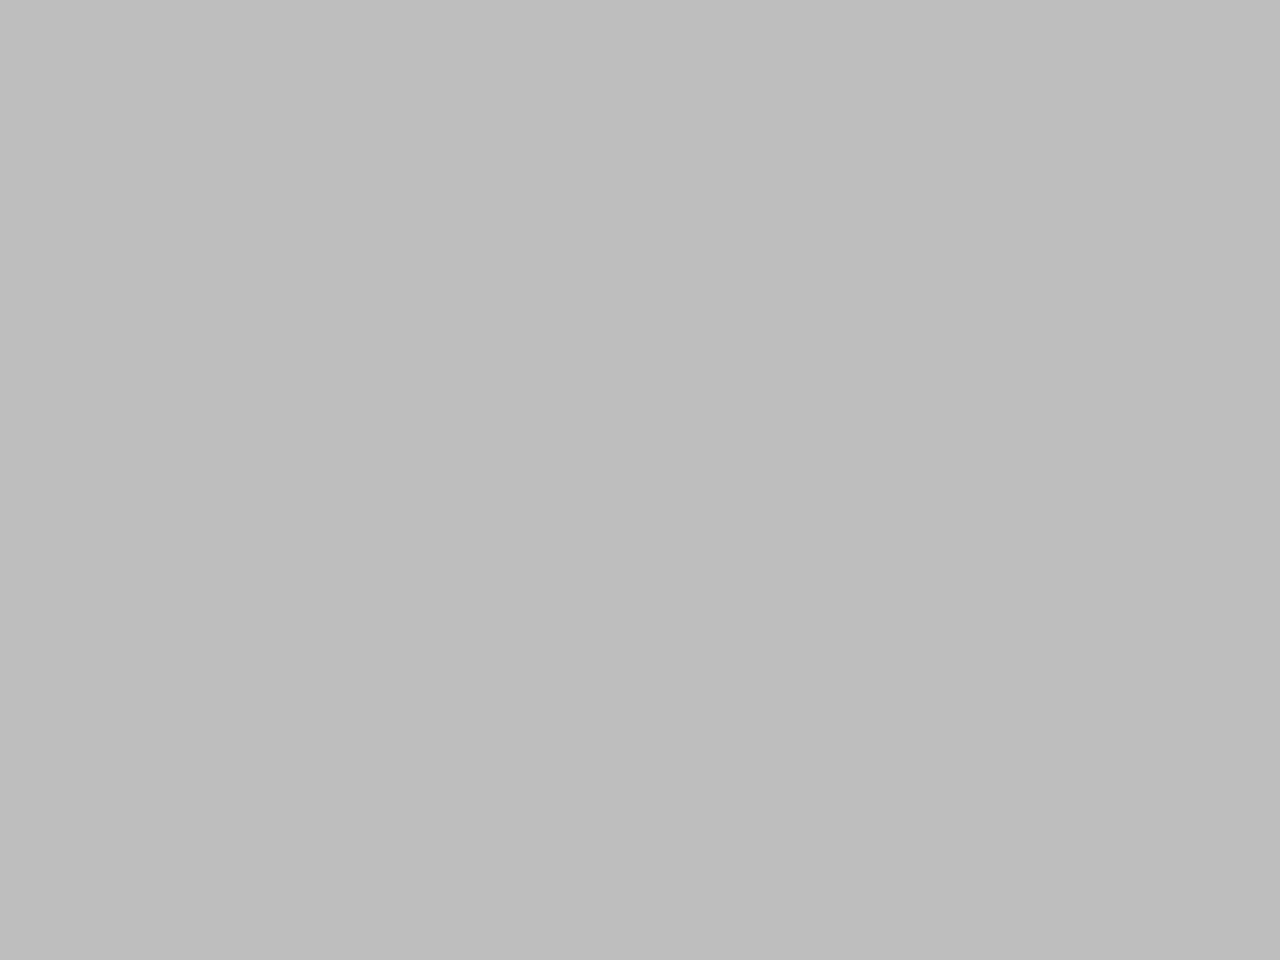 1280x960 Gray X11 Gui Gray Solid Color Background